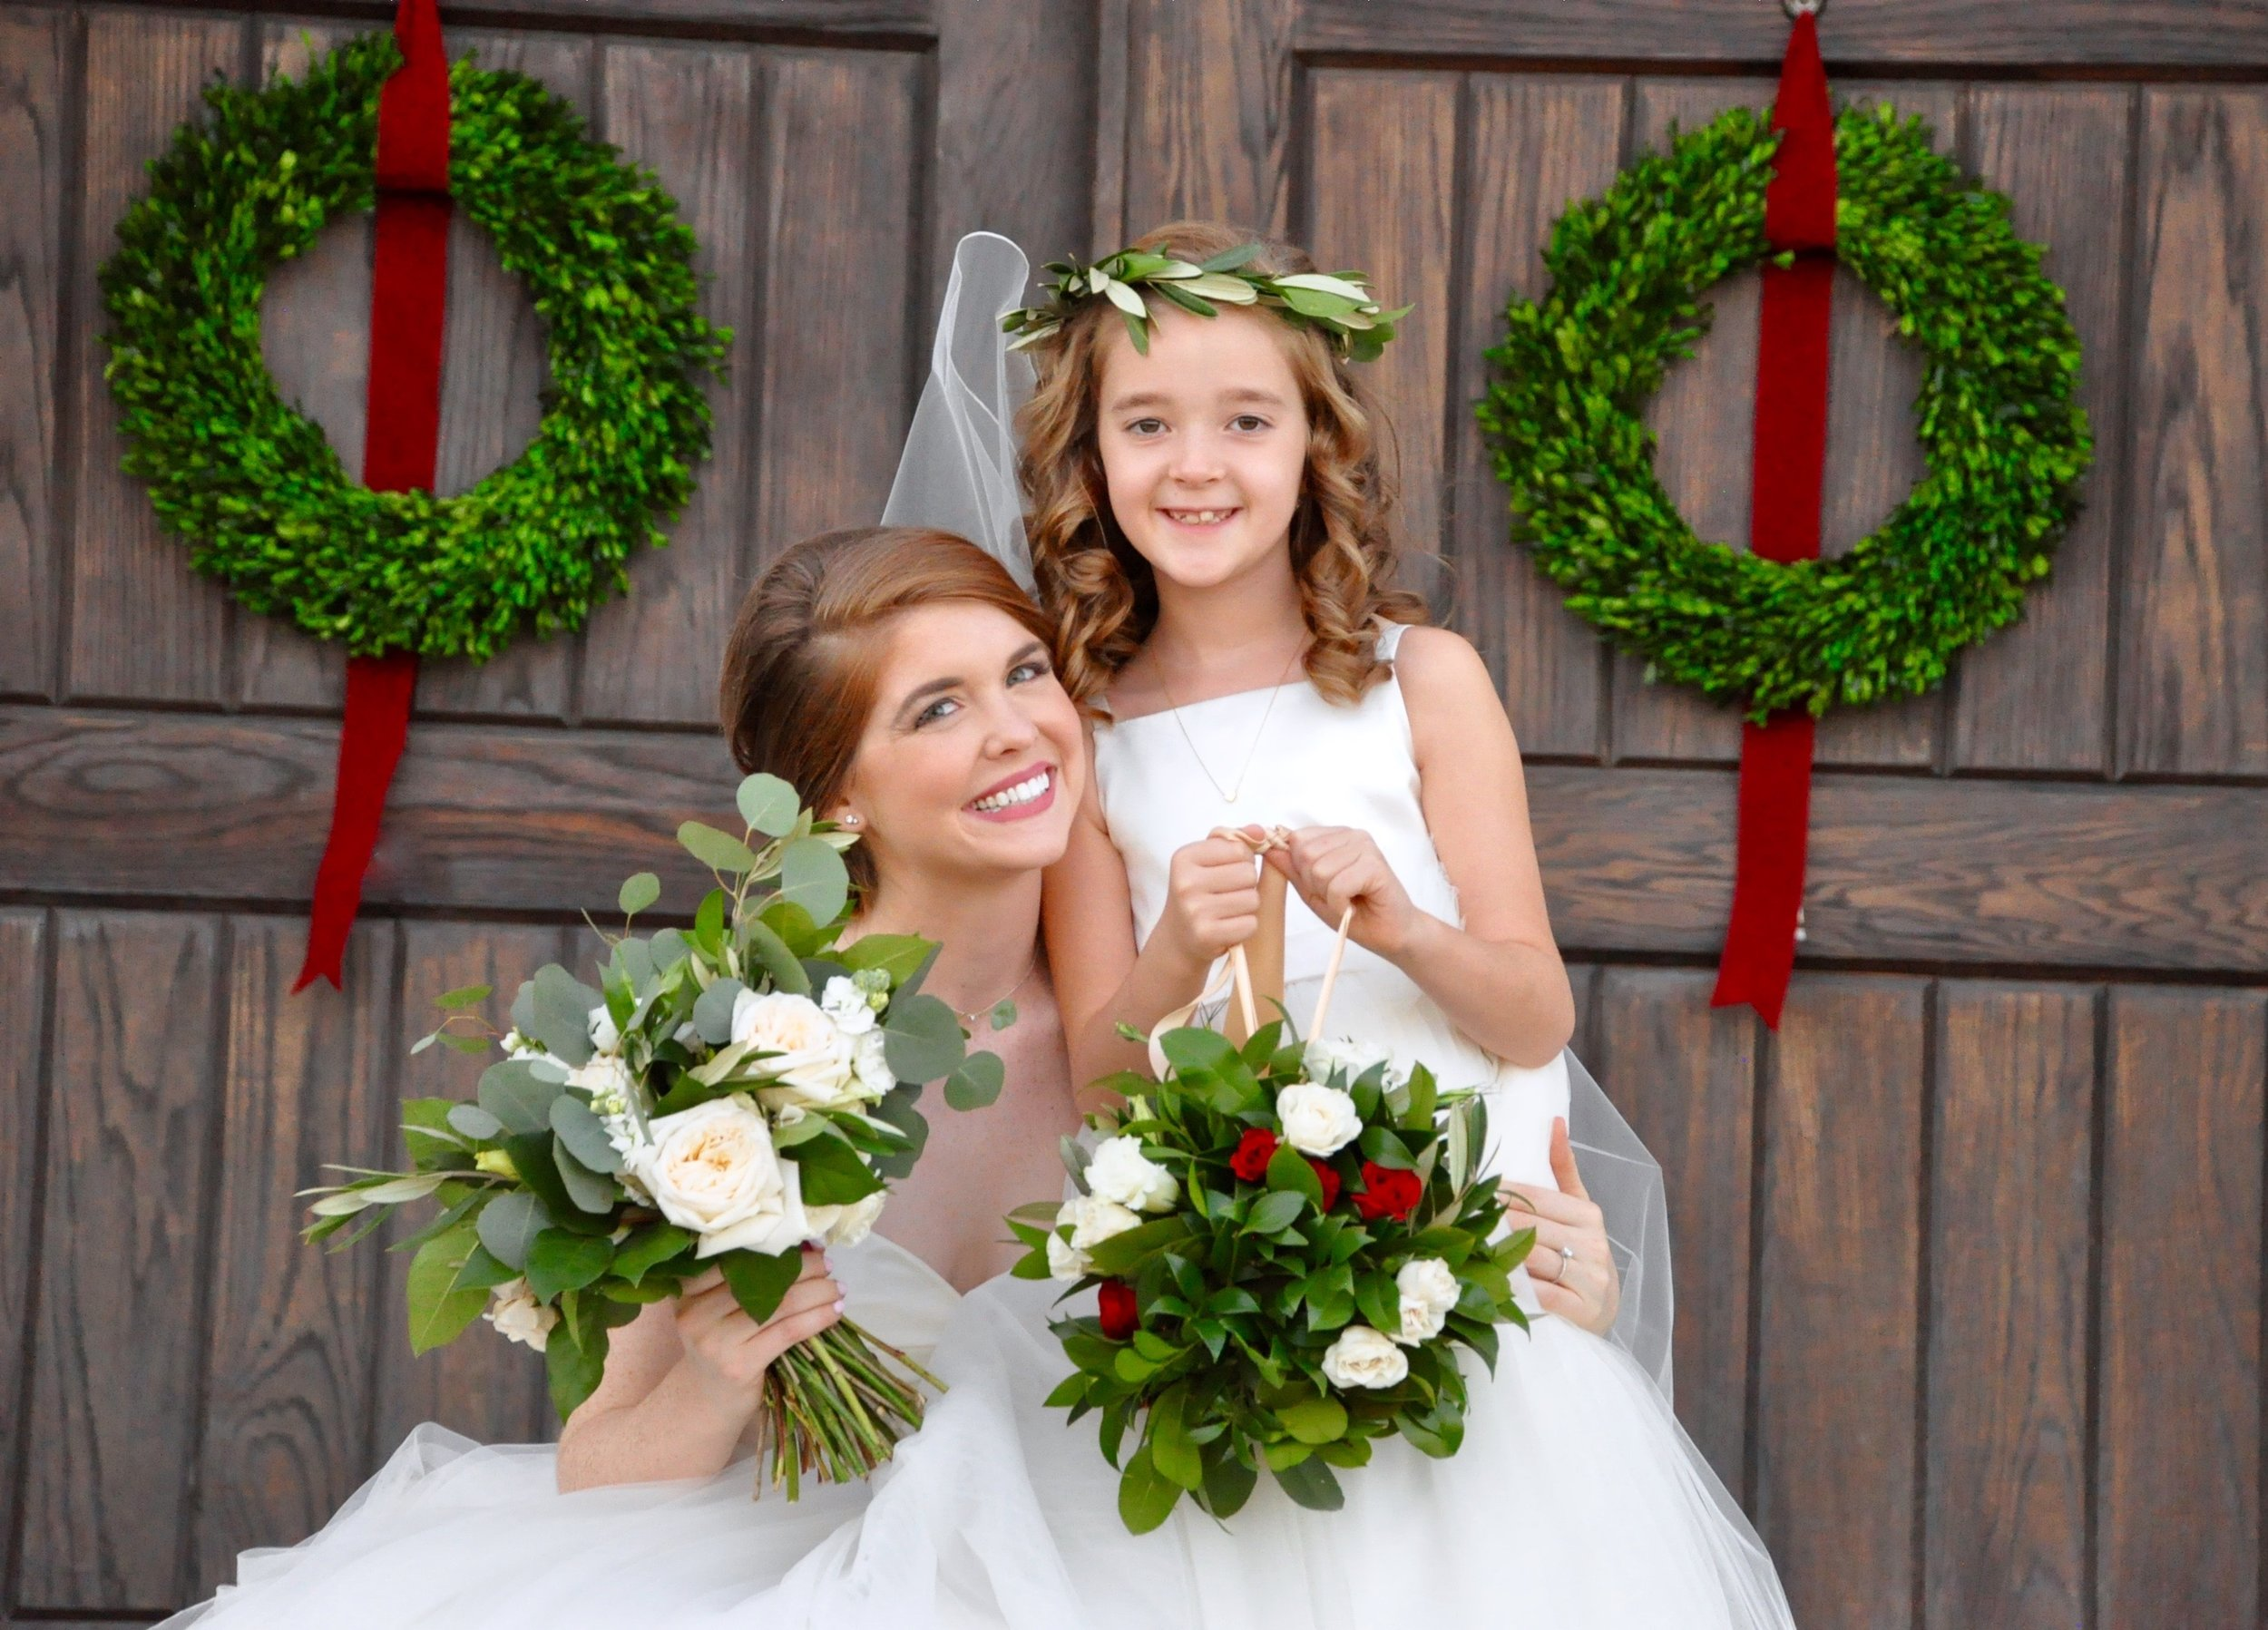 heidi lockhart somes photography, the castle at rockwall, grand slam glam, blue willow by anne barge,  how to personalize your wedding even with a tight budget, 22 ways to personalize your wedding and stay in budget, menguin tuxedo, flower girl, kissing ball